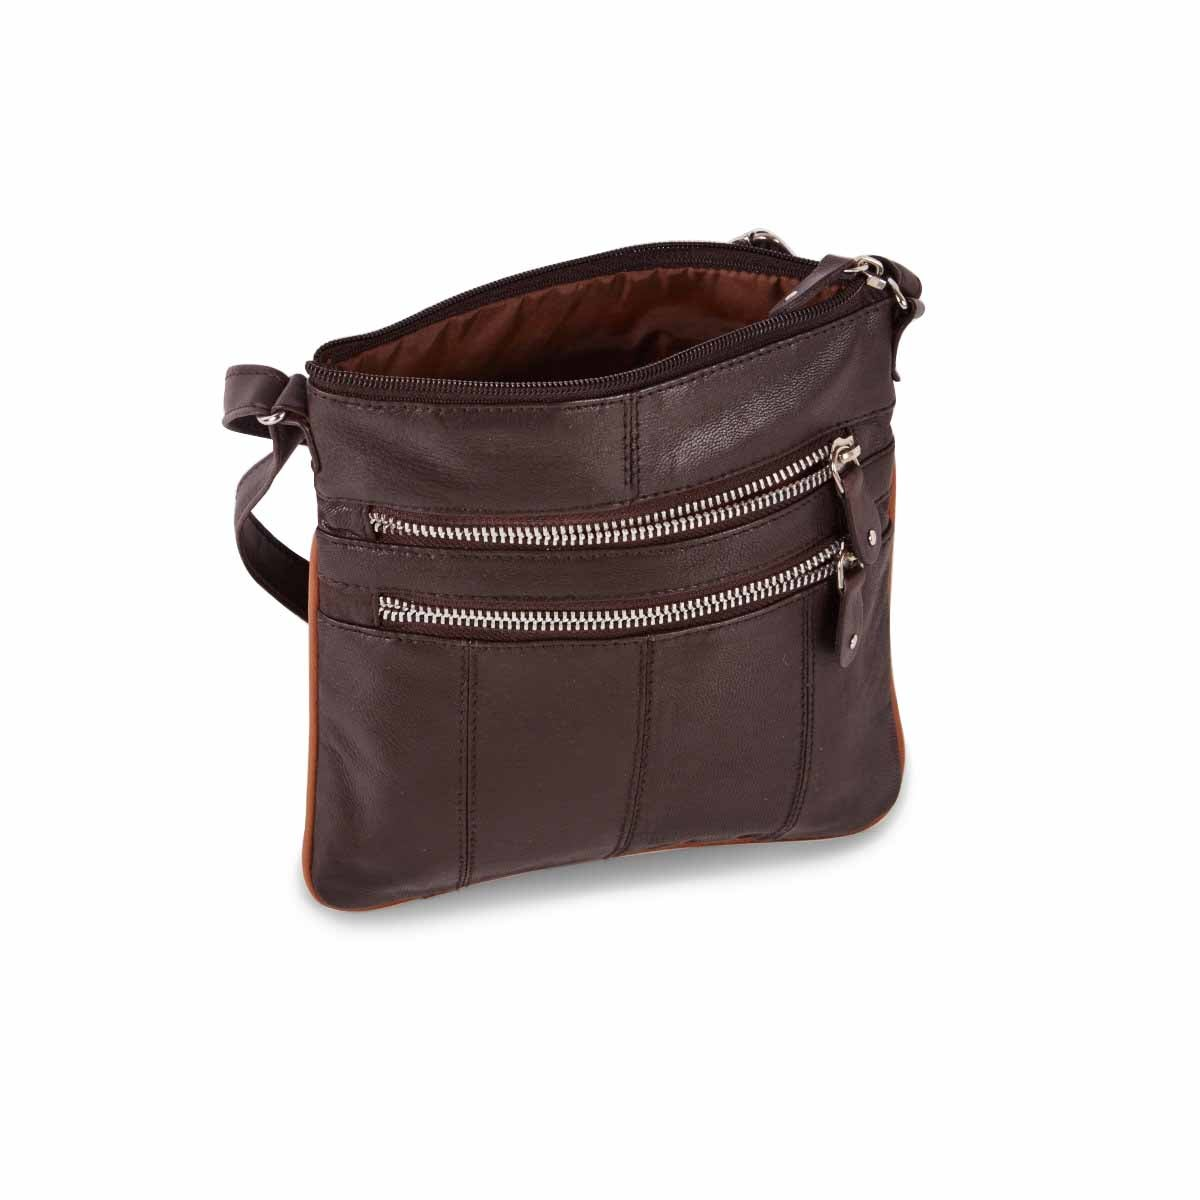 Women's brown sheep leather cross body bag